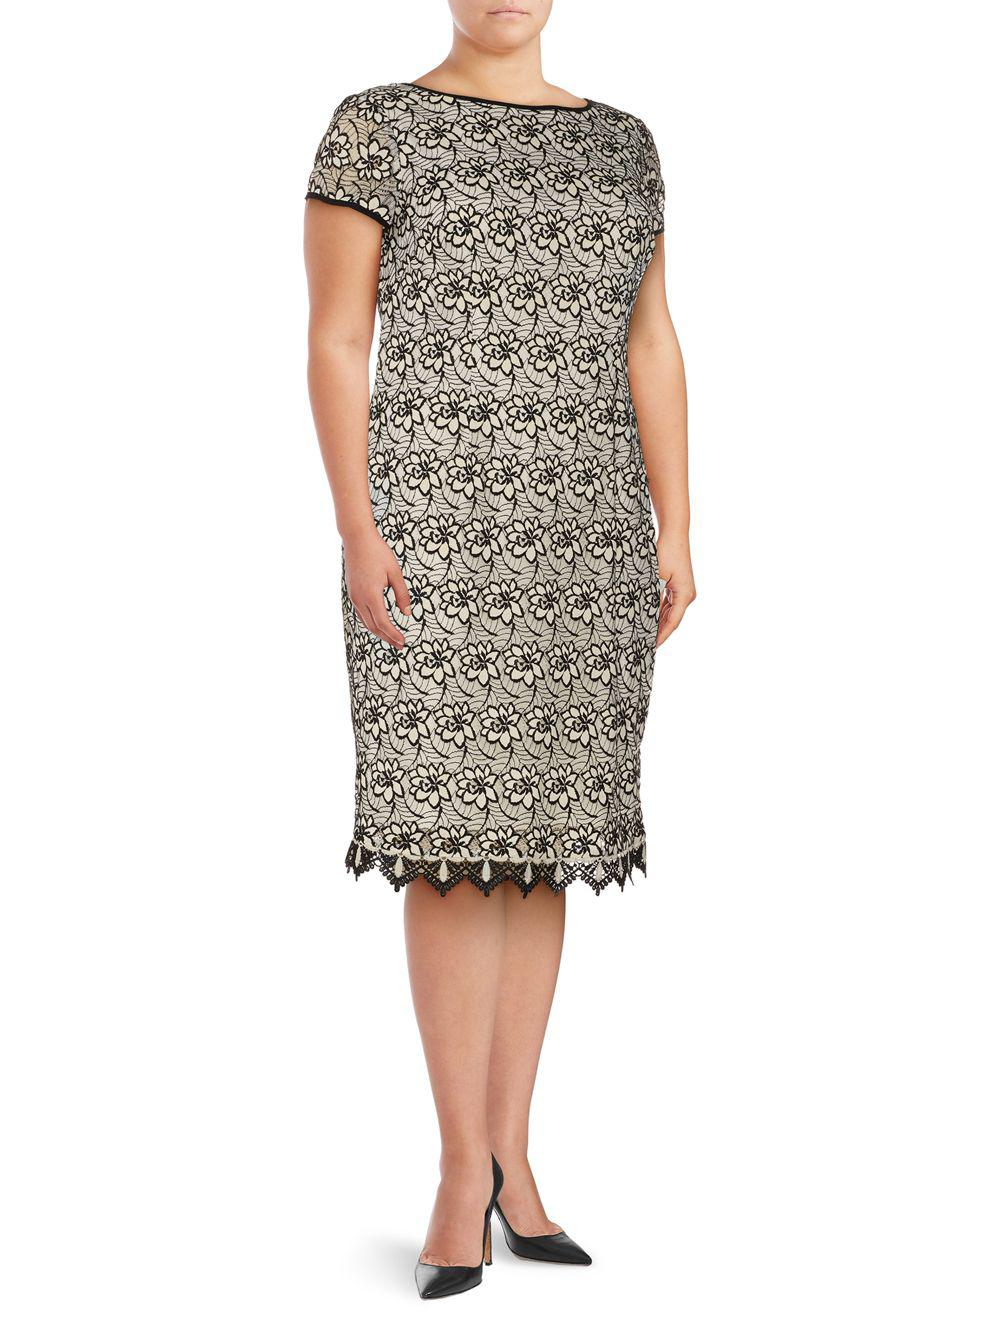 c017b5f931b Lyst - Adrianna Papell Plus Floral Lace Sheath Dress in White